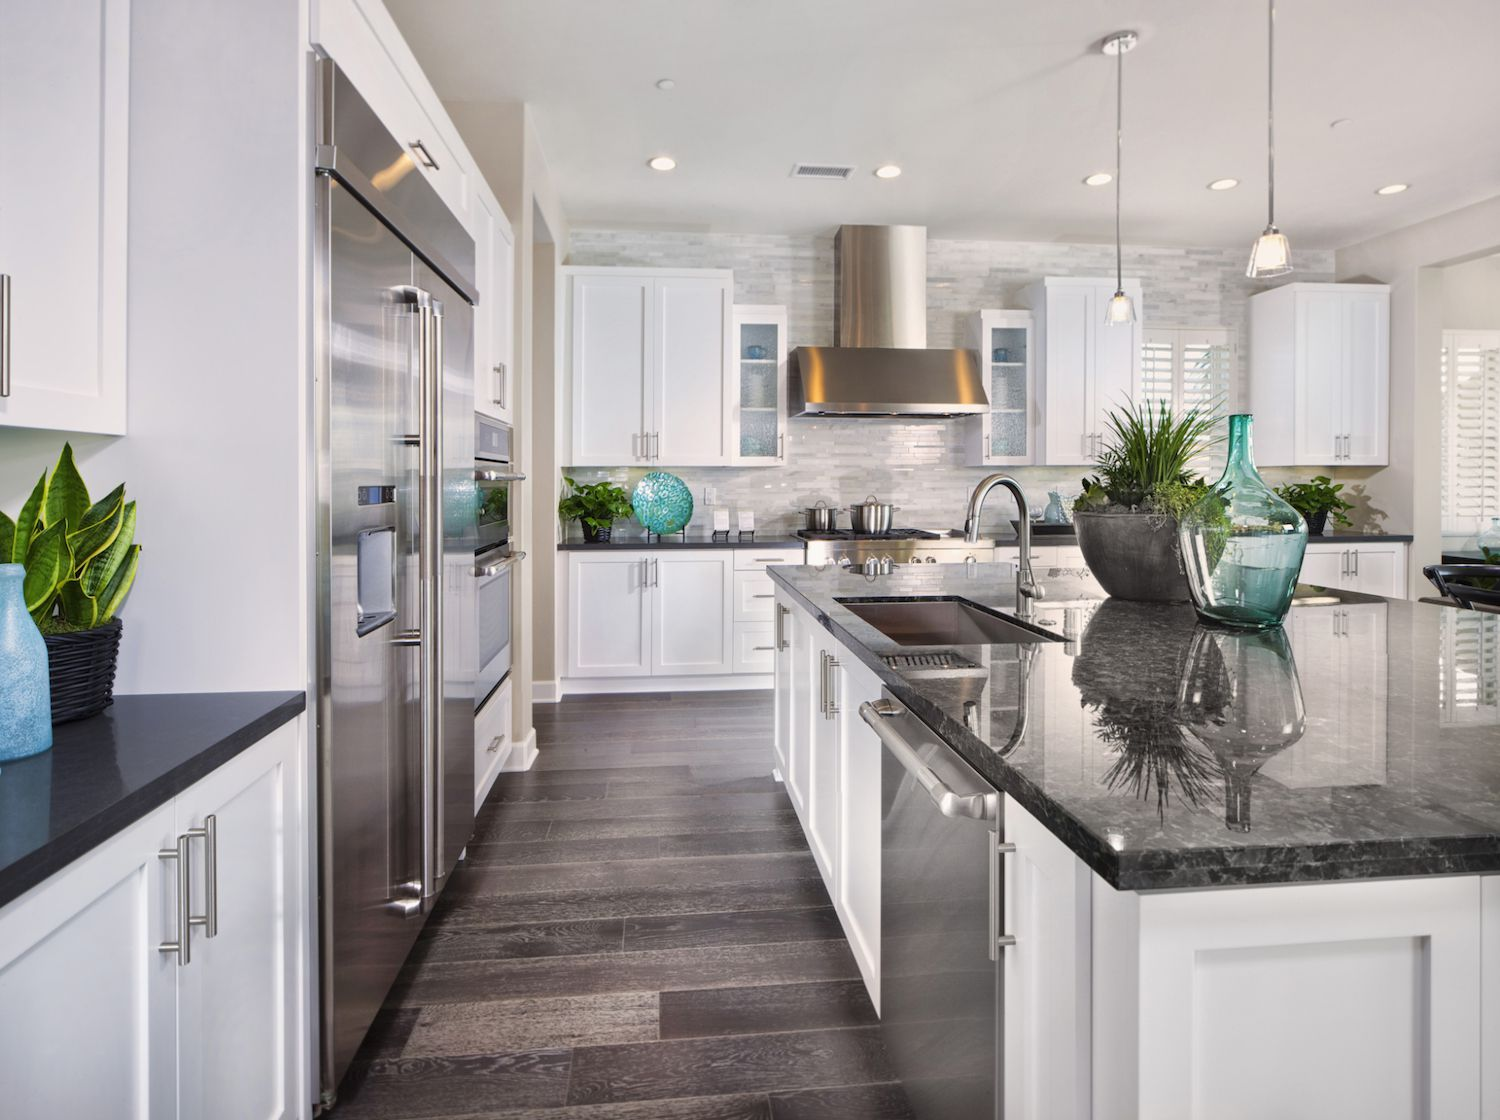 Consider Giving Your Kitchen Cabinets A Facelift